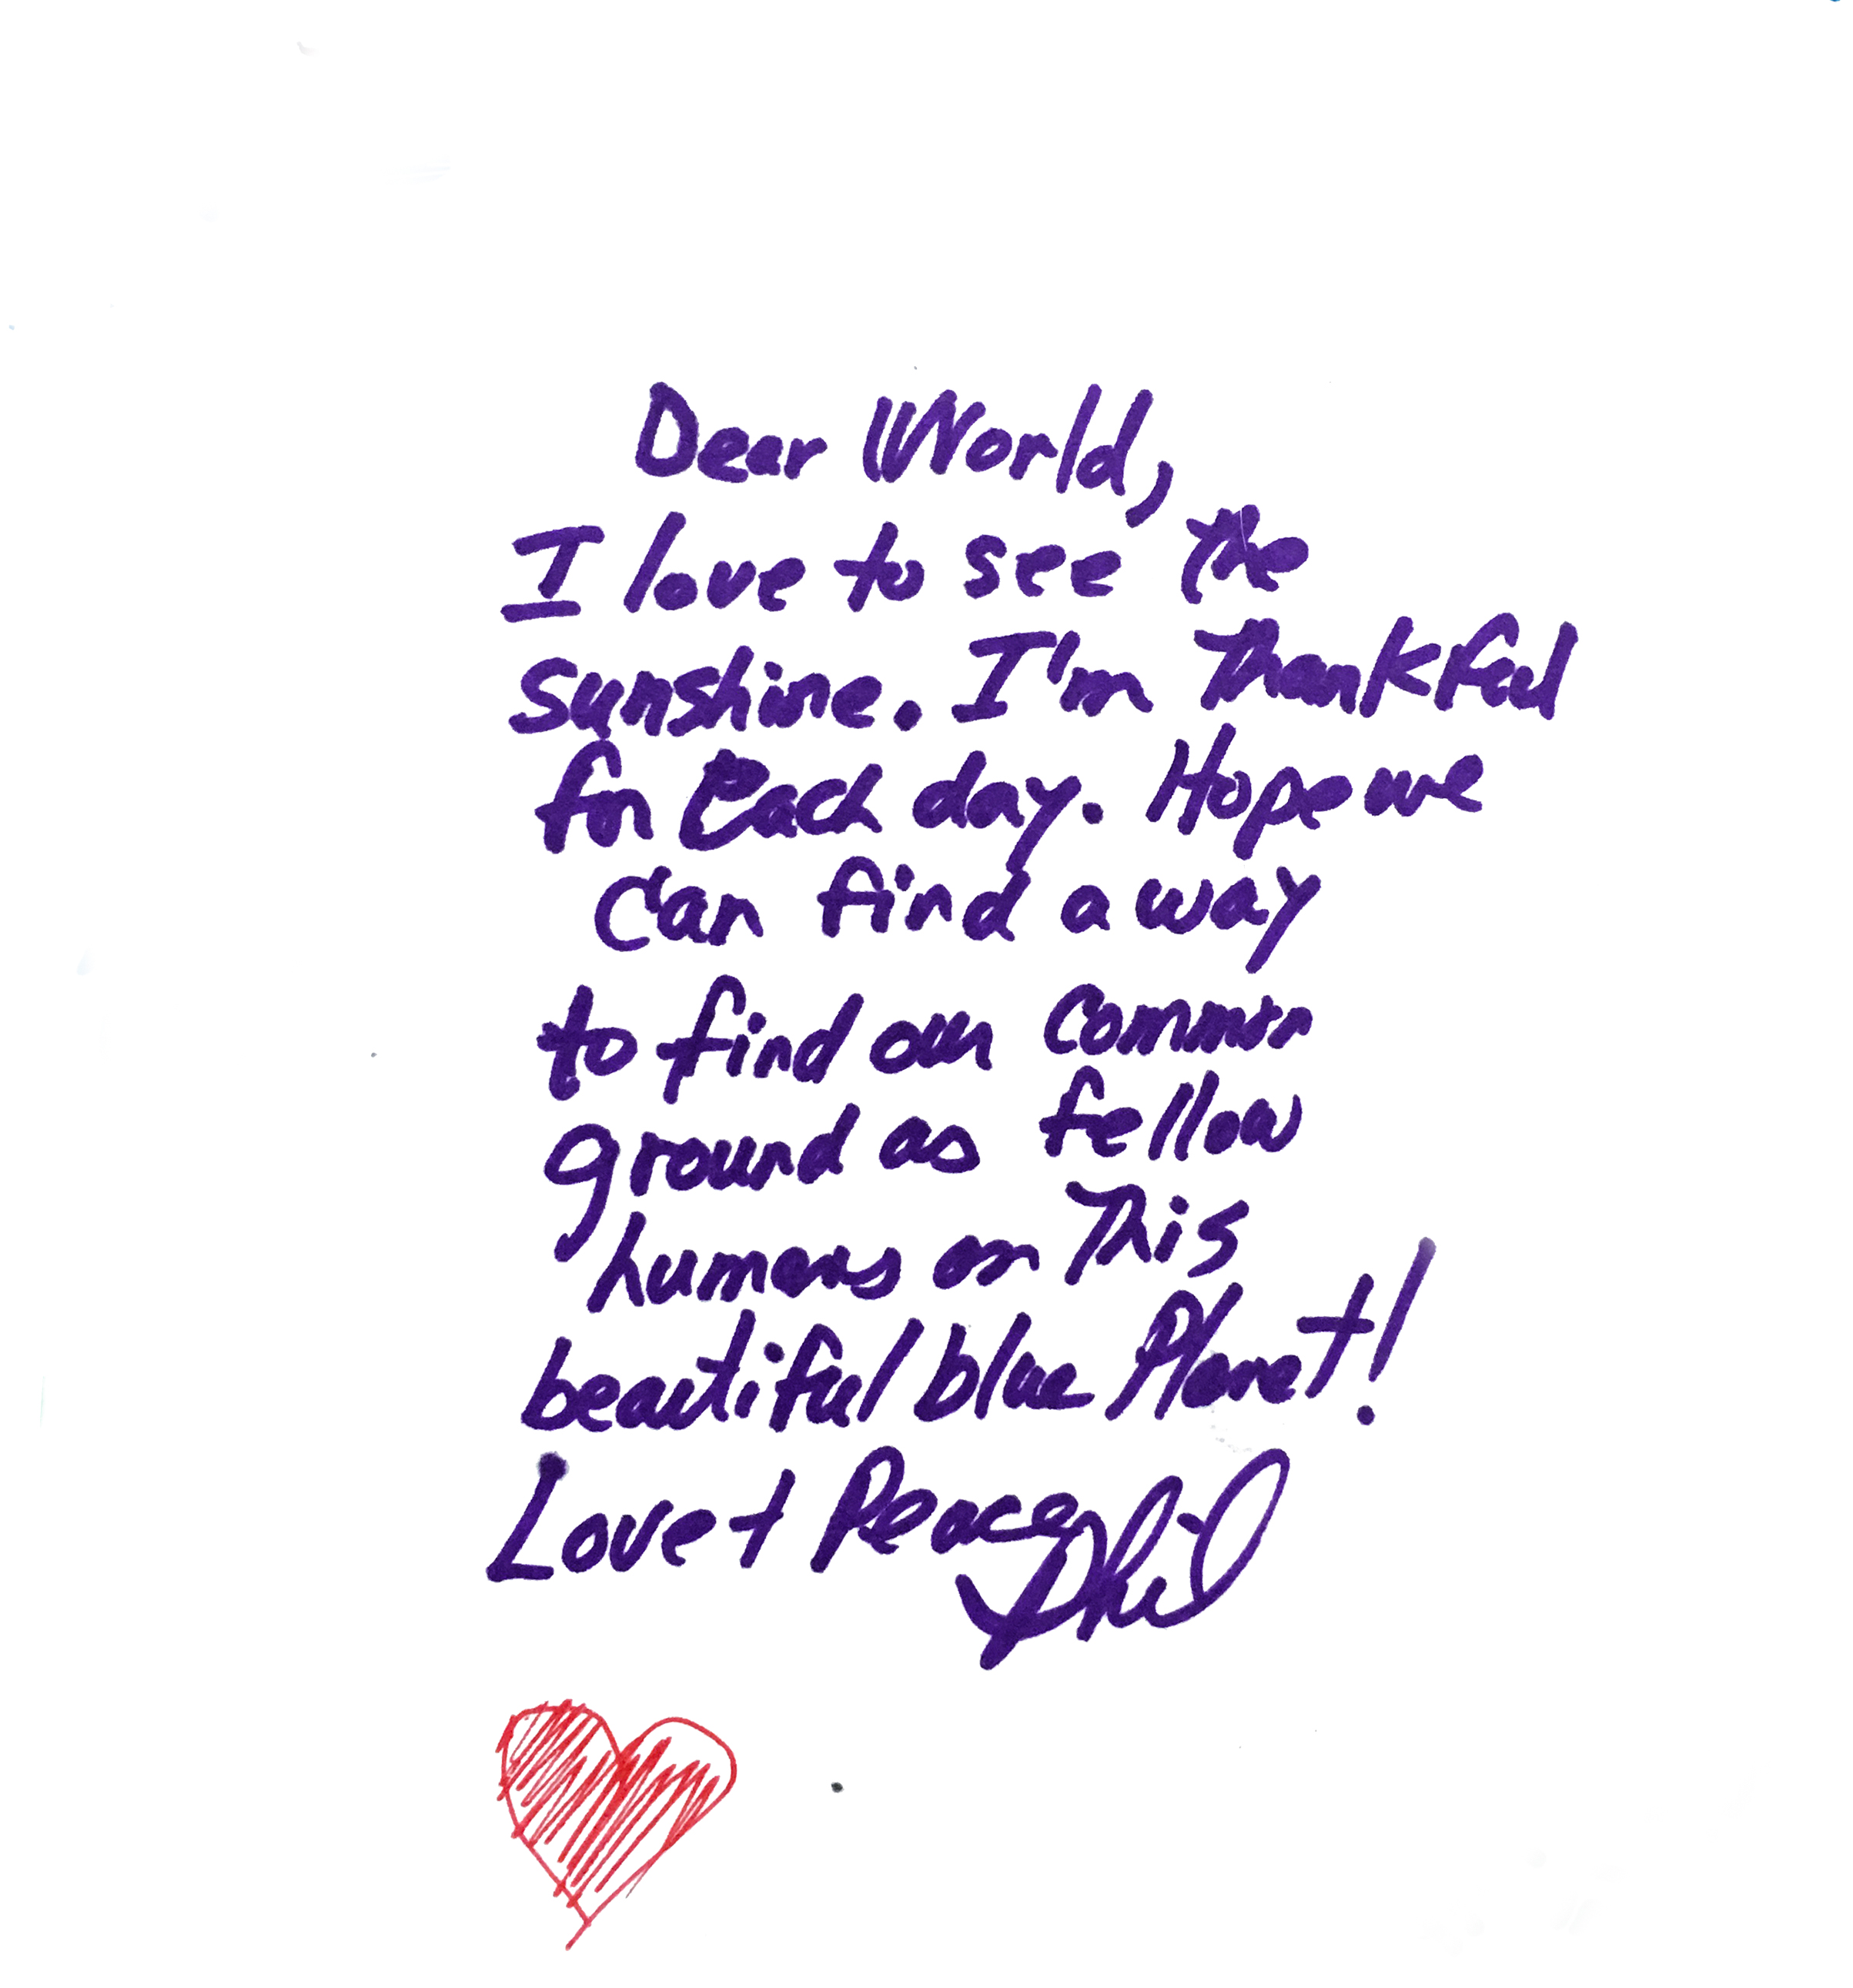 """Dear World, I love to see the sunshine. I'm thankful for each day. Hope we can find a way to find our common ground as fellow humans on this beautiful blue planet! Love + Peace, Phil"" (USA)"